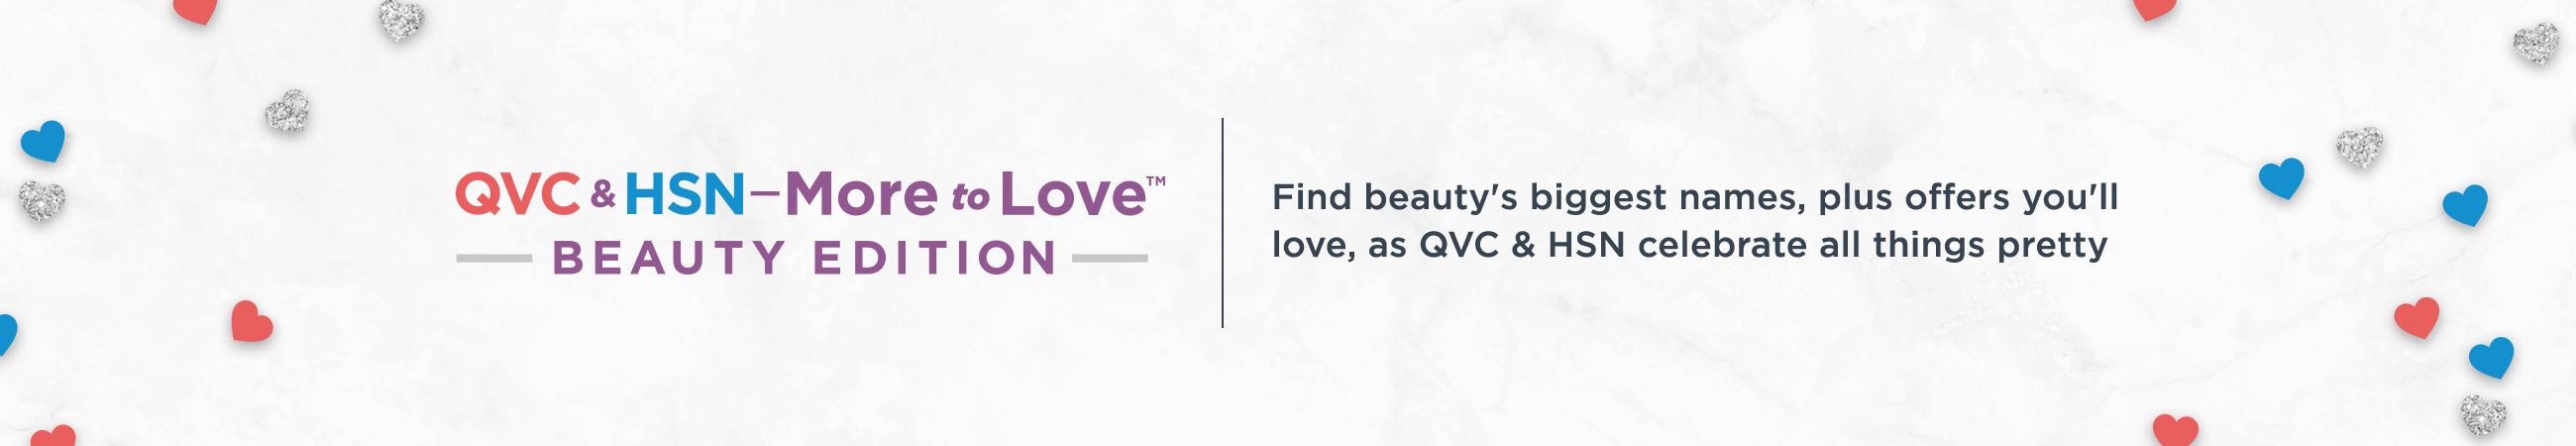 QVC & HSN More to Love™ Beauty Edition